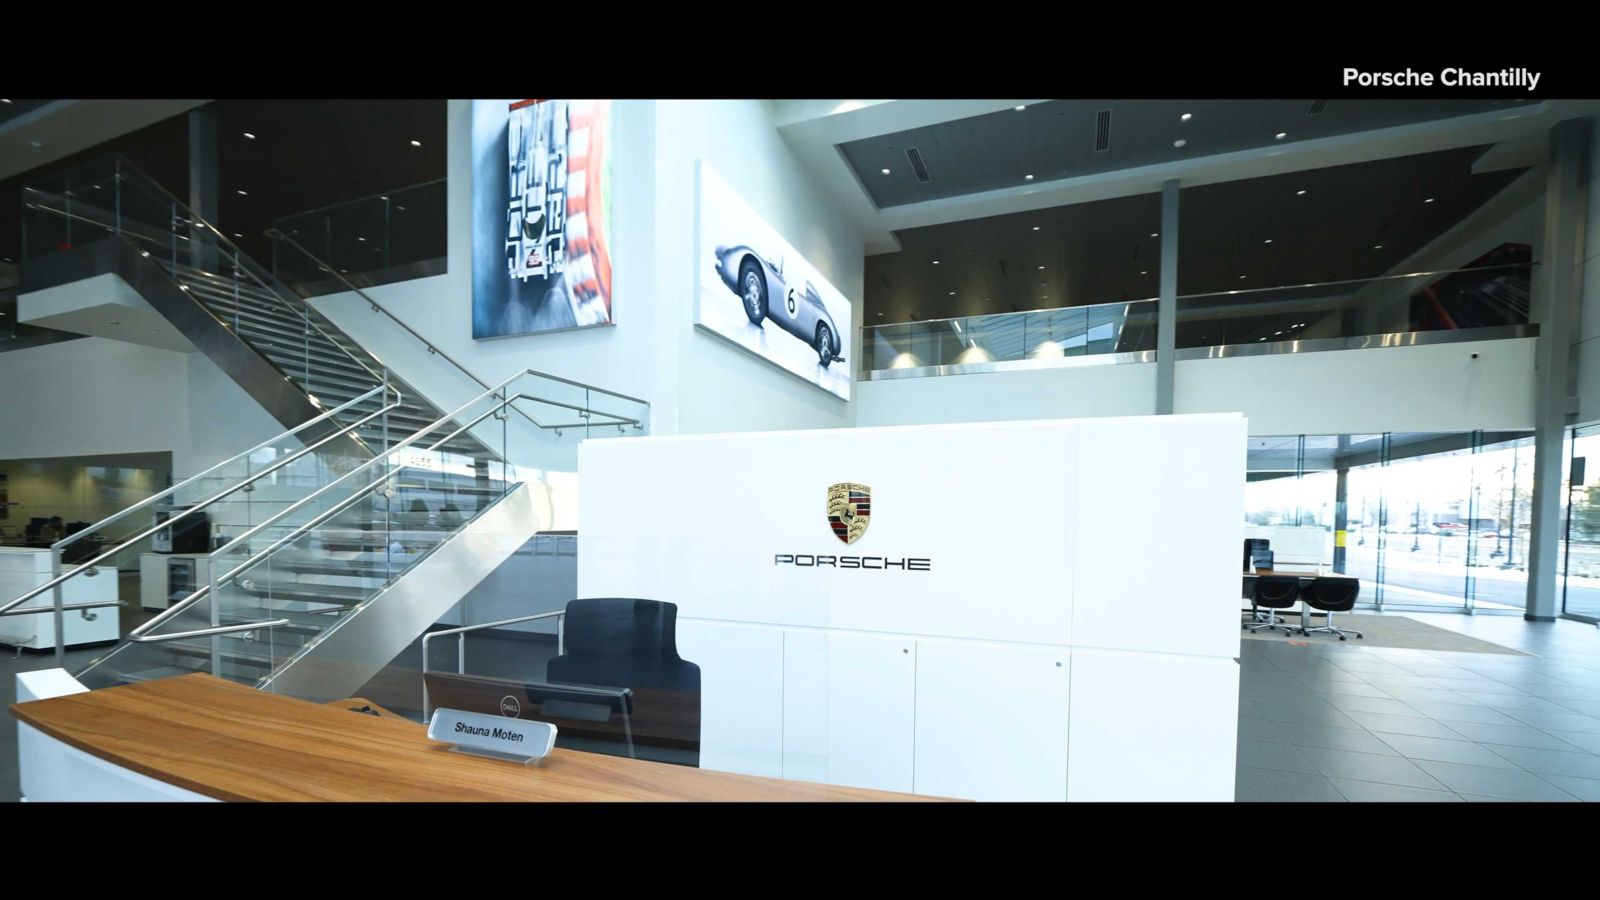 Porsche Chantilly dealership